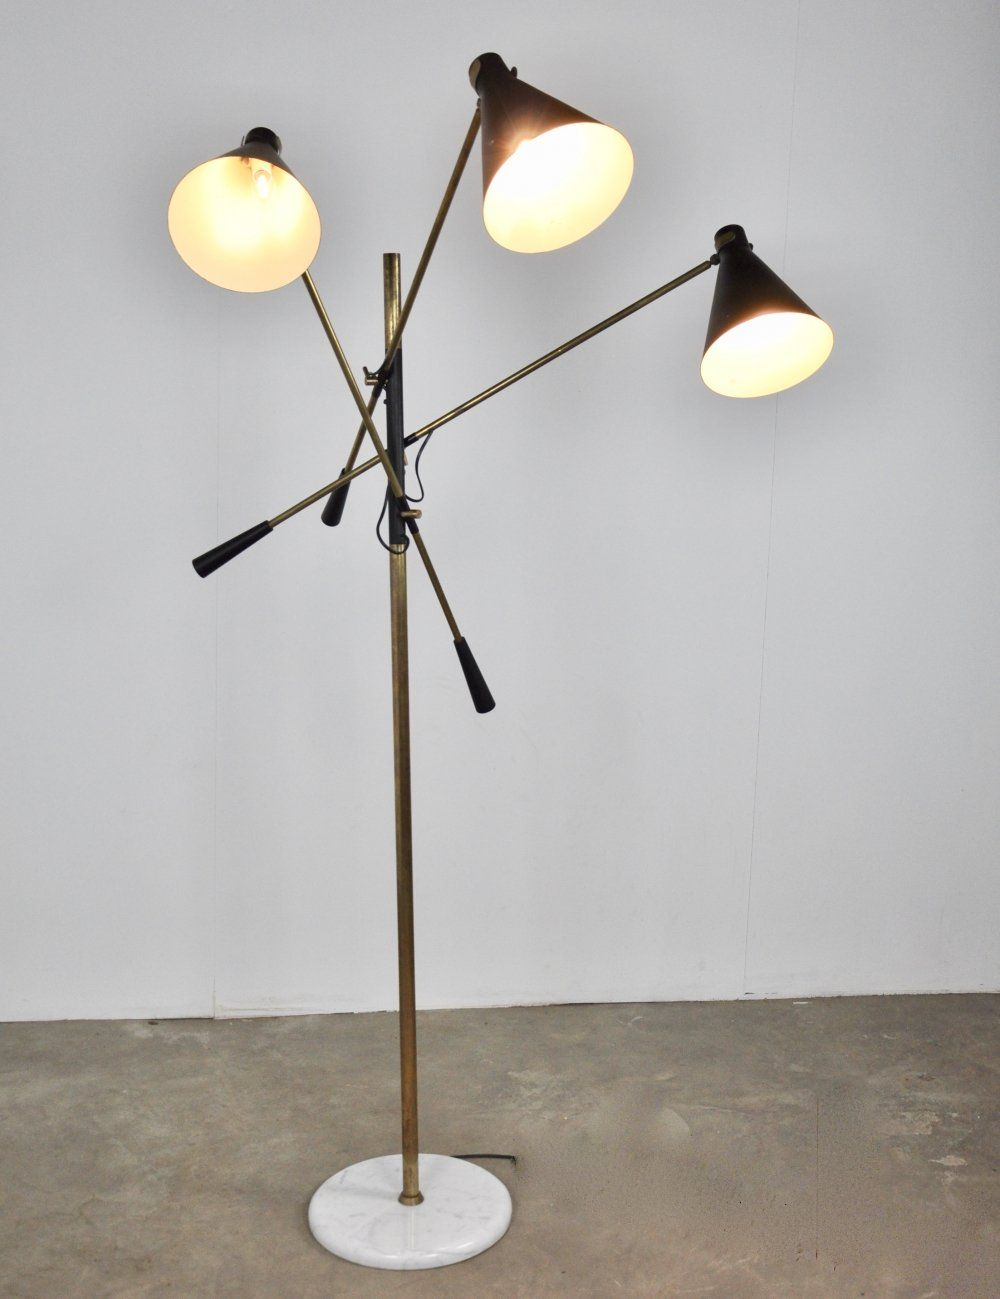 For Sale Adjustable 3 Arm Floor Lamp By Stilnovo 1950s Arm Floor Lamp Lamp Floor Lamp